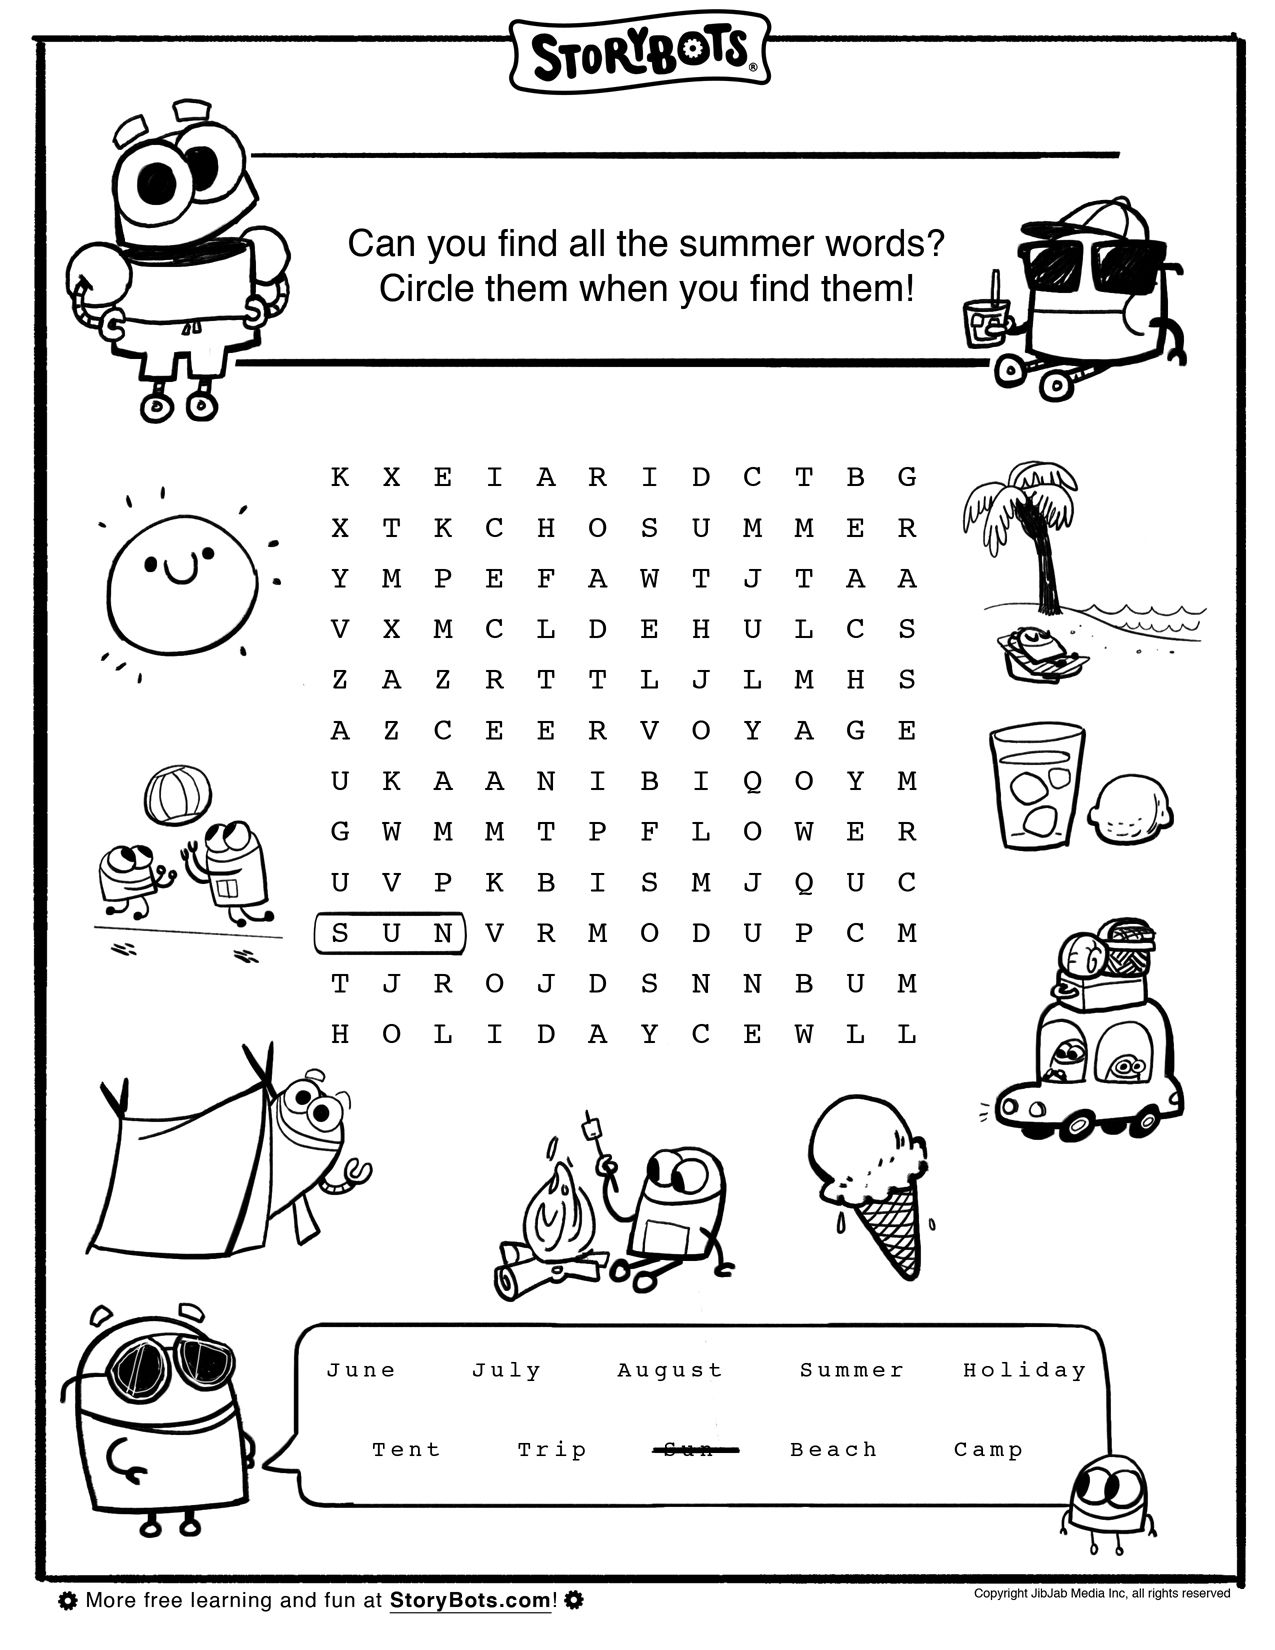 Summer Word Search | Summer Activity Sheets | Pinterest | Word search